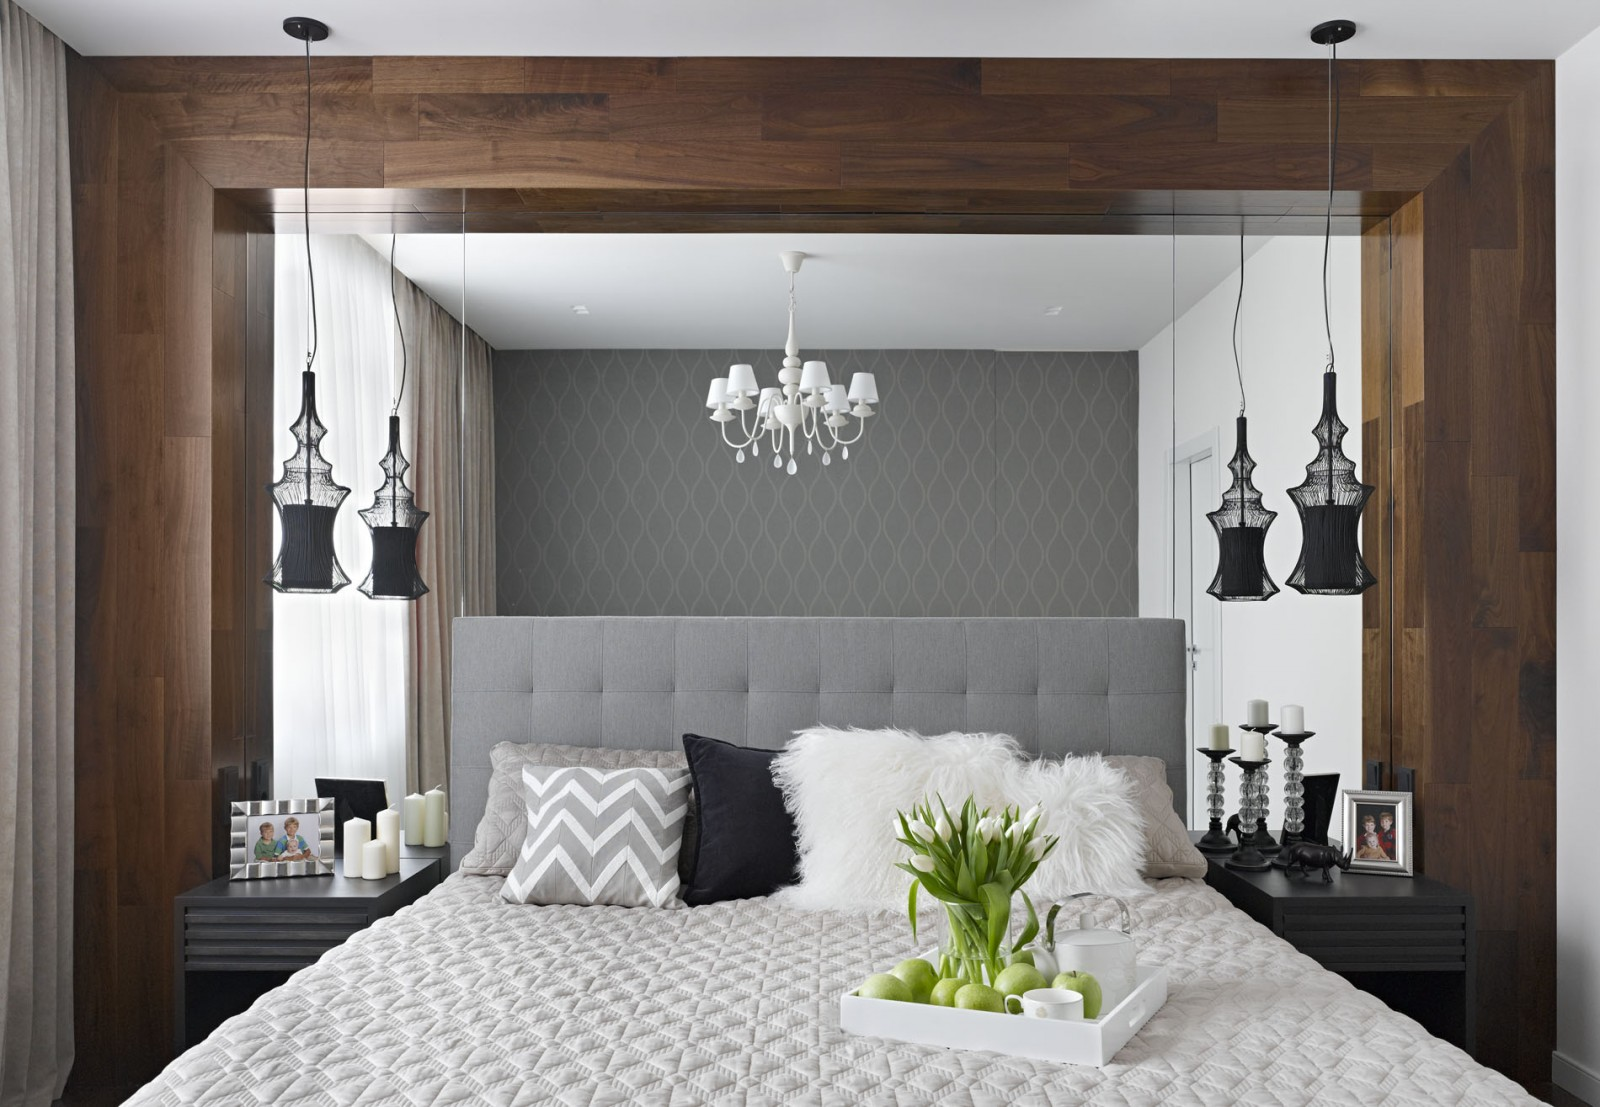 20 Small Bedroom Ideas That Will Leave You Speechless ... on Small Room Ideas  id=83742